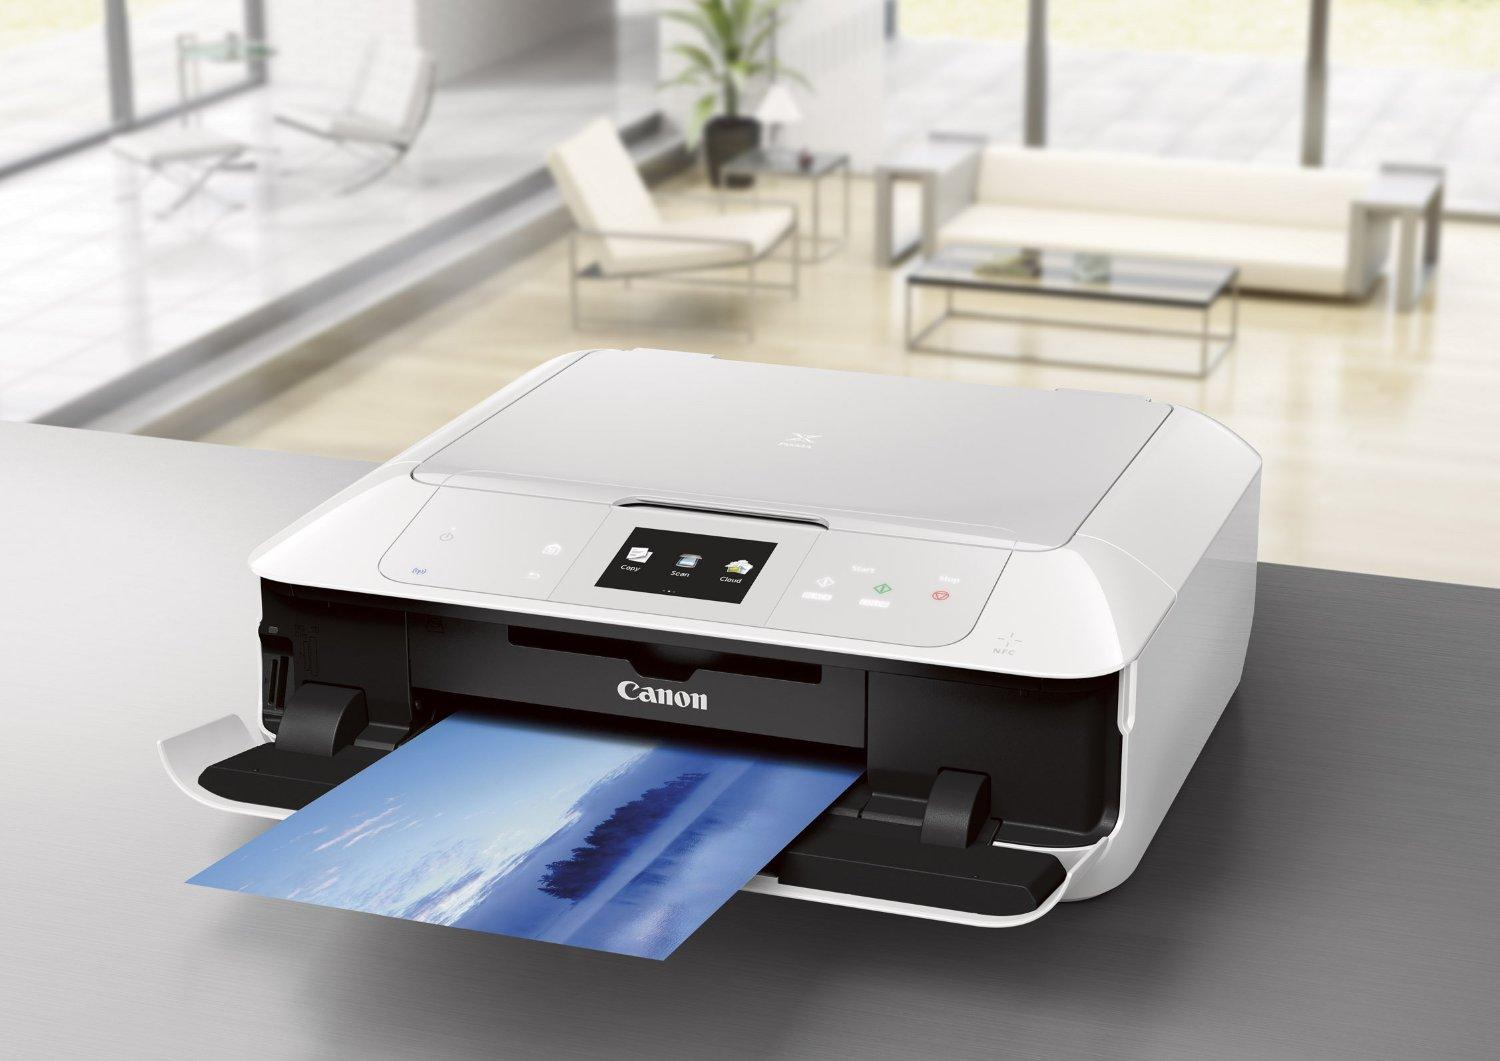 Canon PIXMA MG7520 Wireless Color All-in-One Inkjet Printer